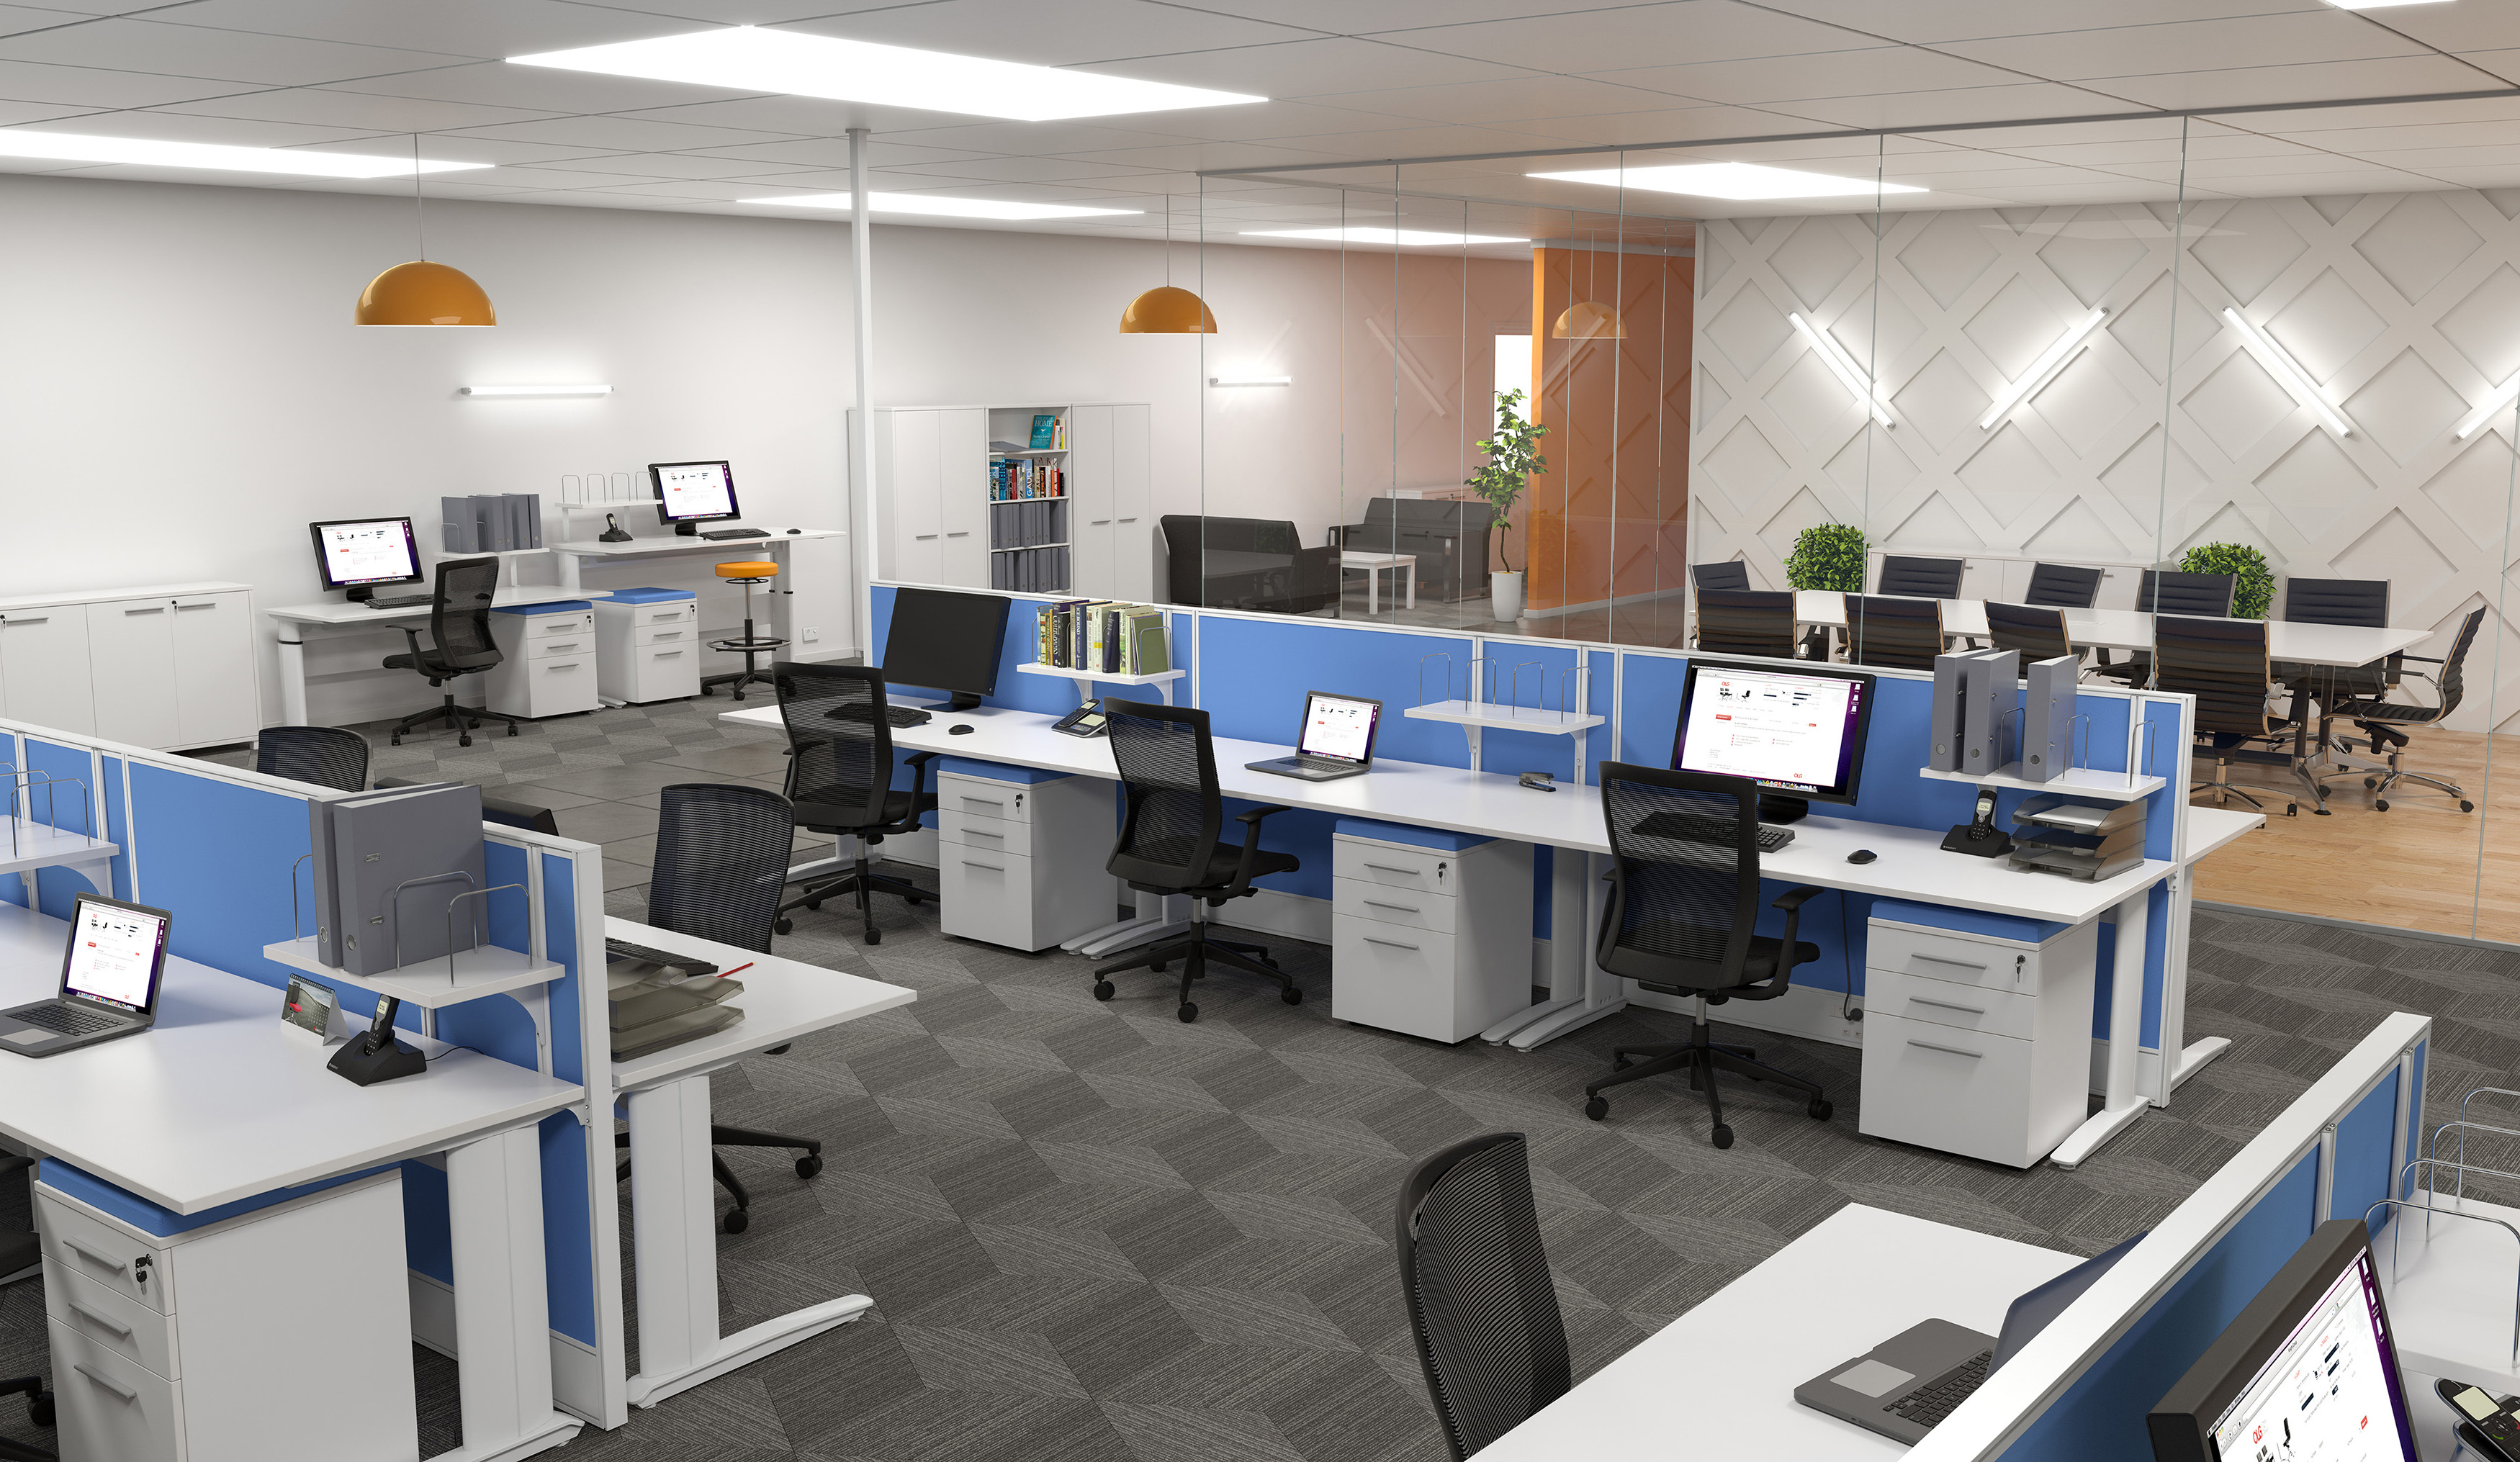 Modern Office Layout With Height Adjustable Desks, Standing Desks And Blue  Desk Screens